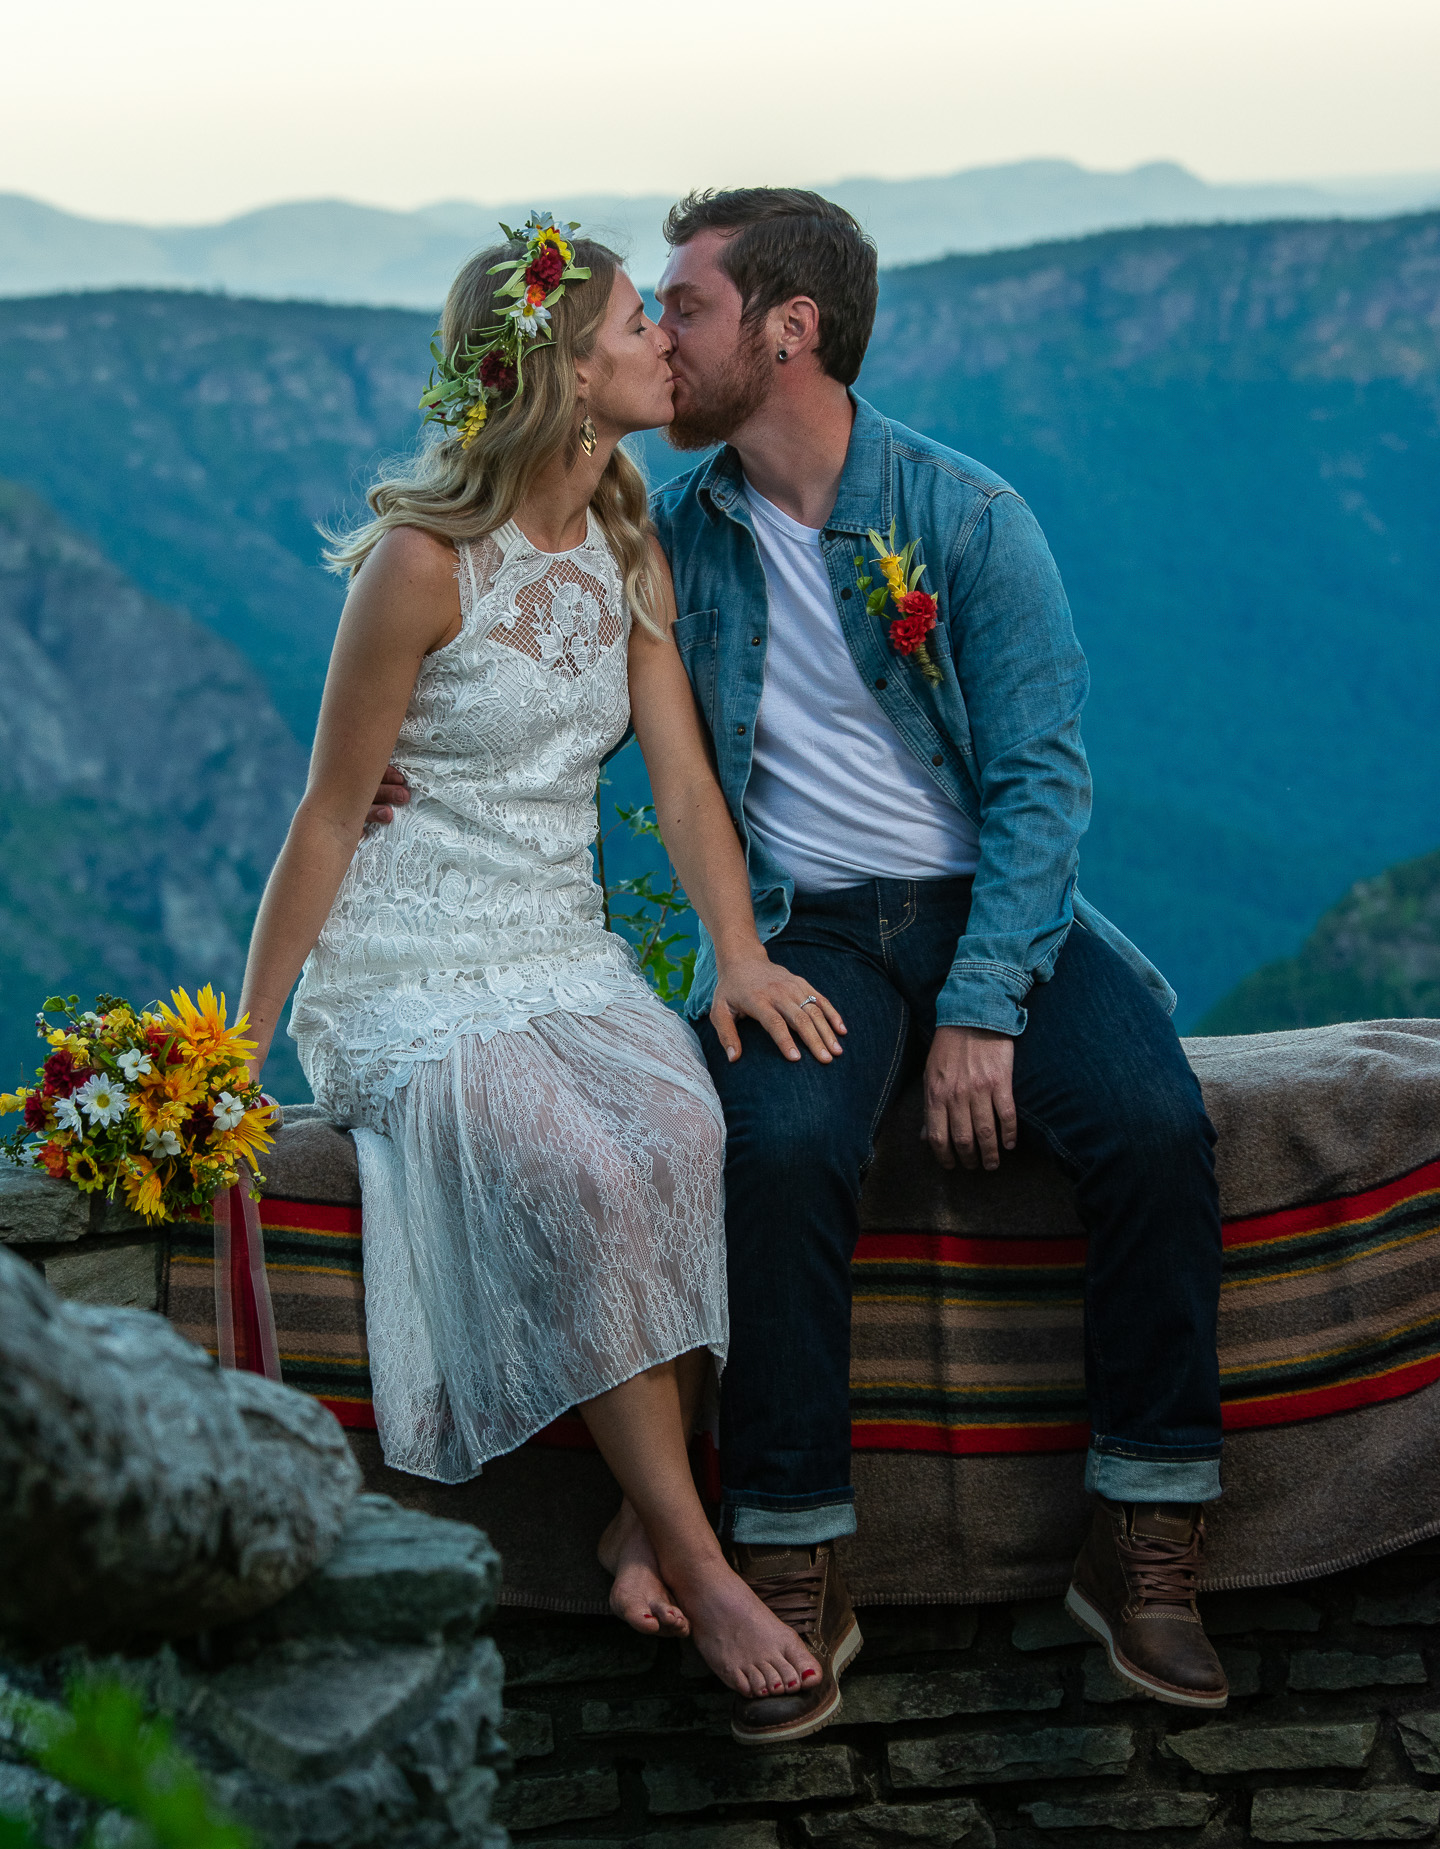 An elopement at the Linville Gorge